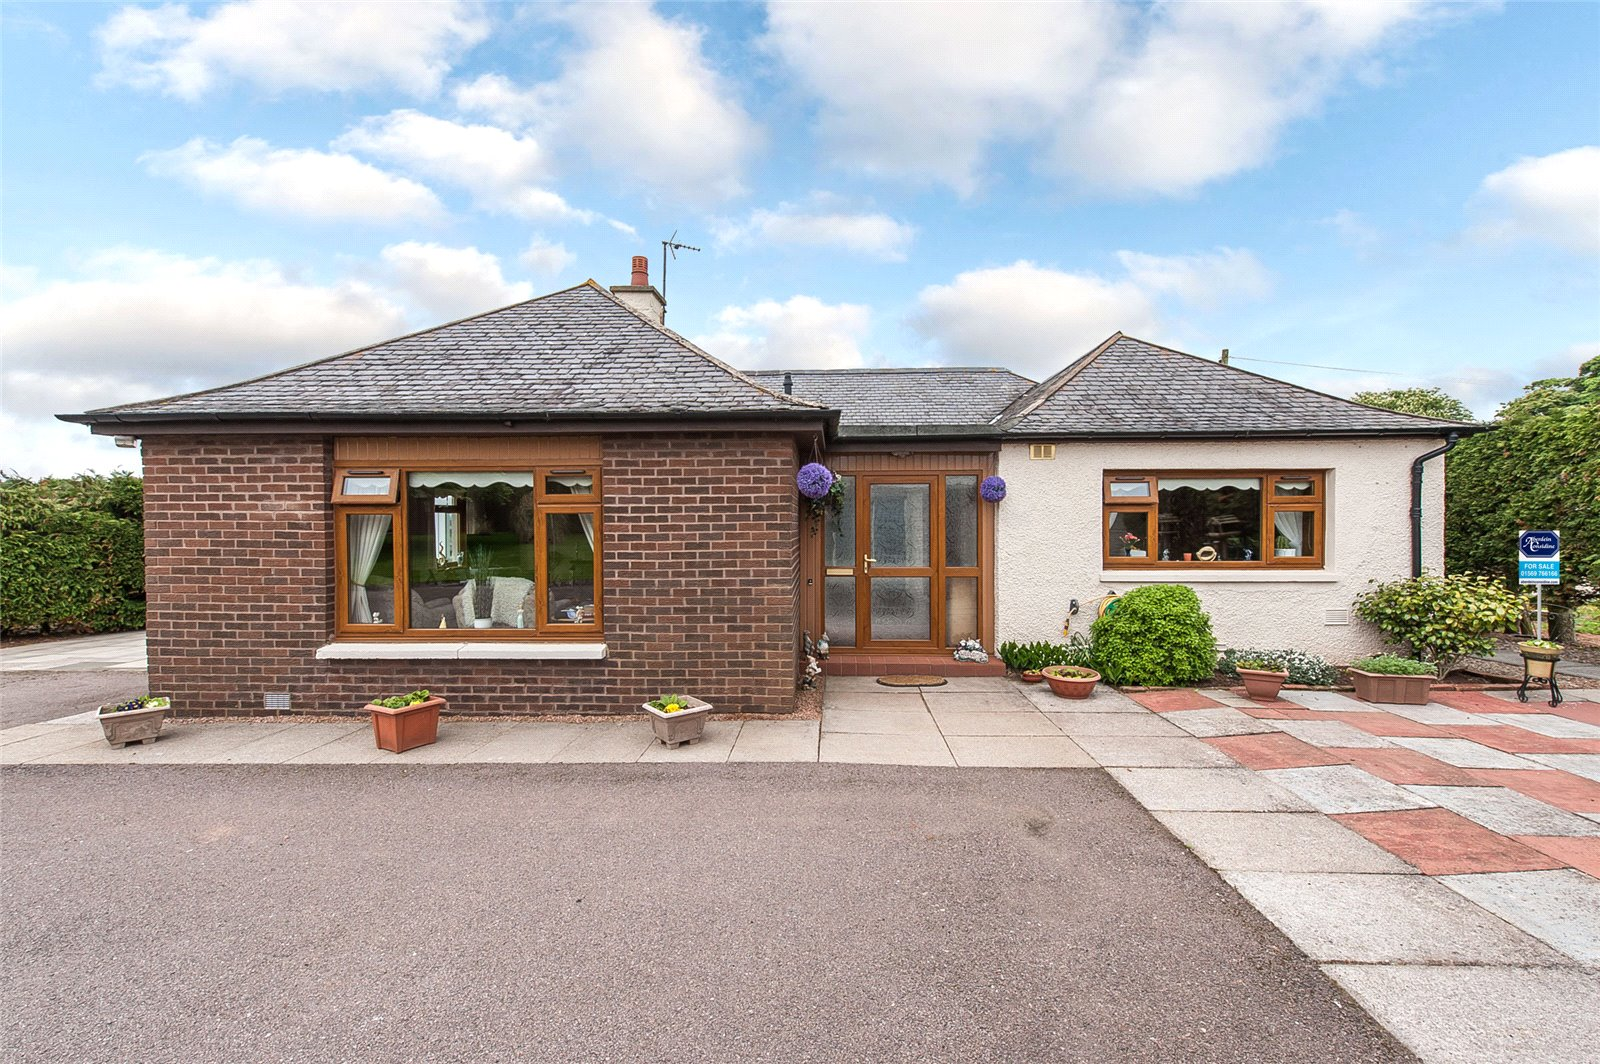 Our latest properties for sale and to let (1st June 2018)